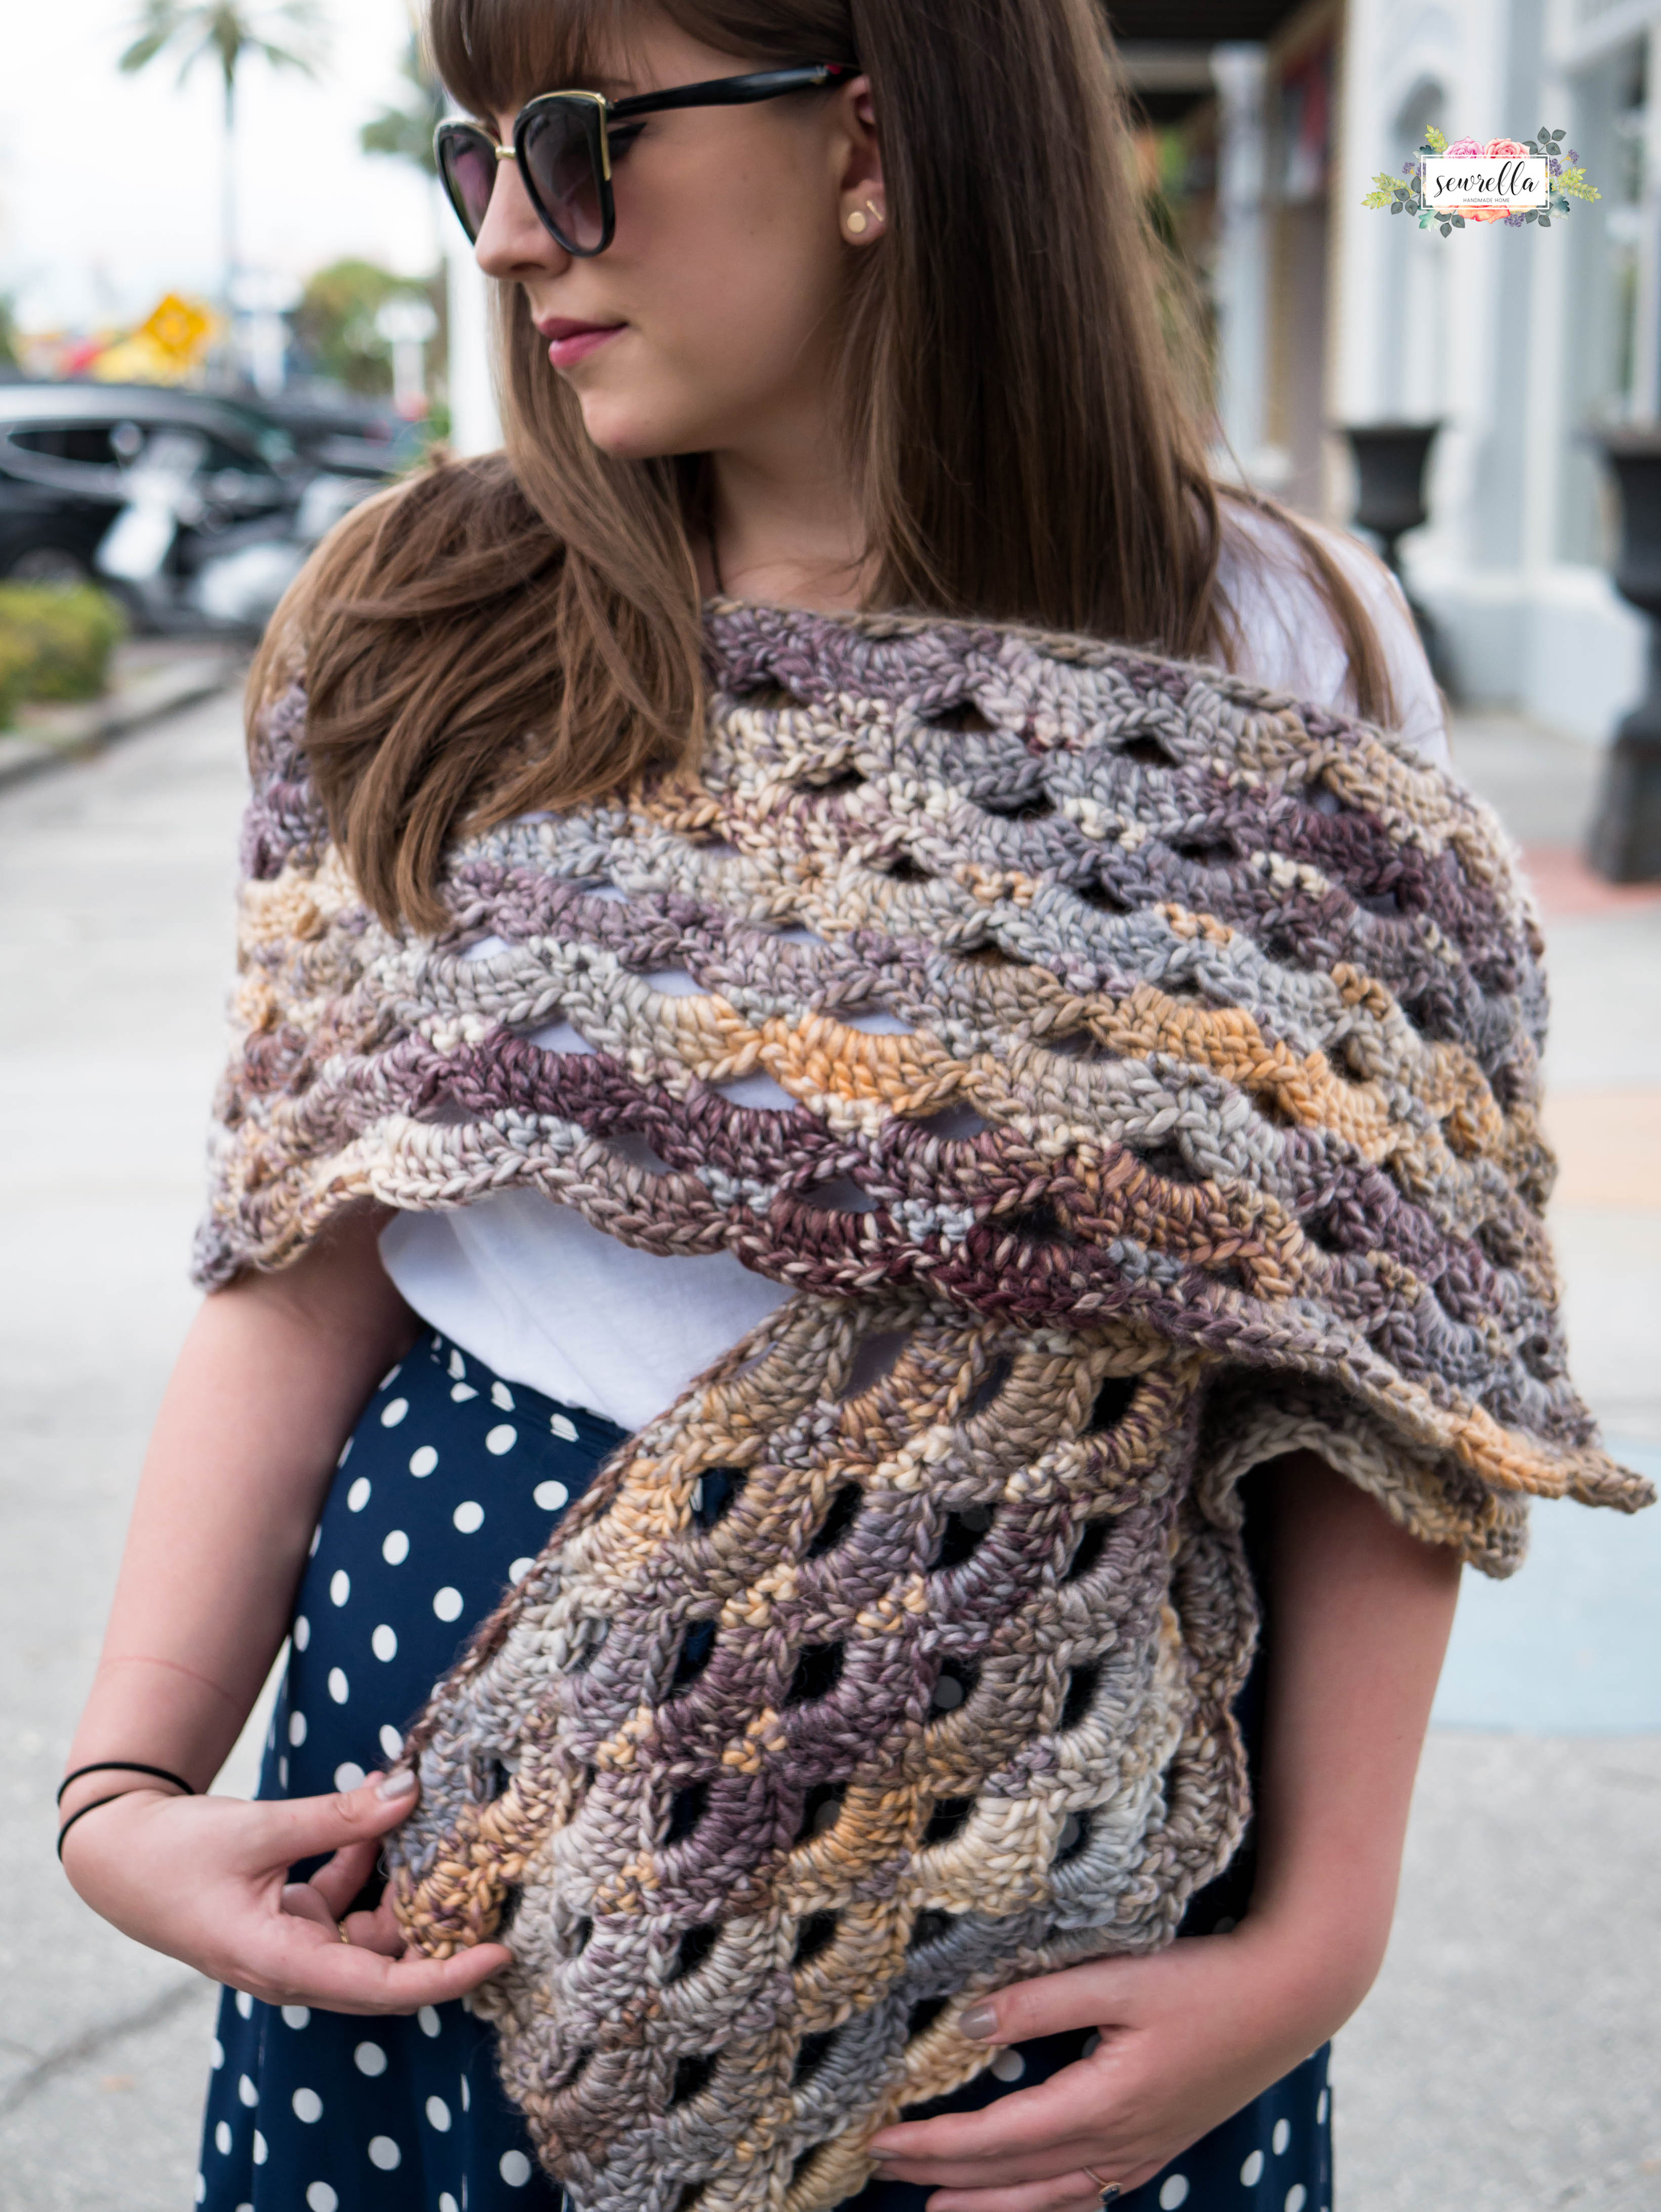 Awesome Crochet Amethyst Wrap Sewrella Red Heart Evermore Of New 22 Ideas Red Heart Evermore